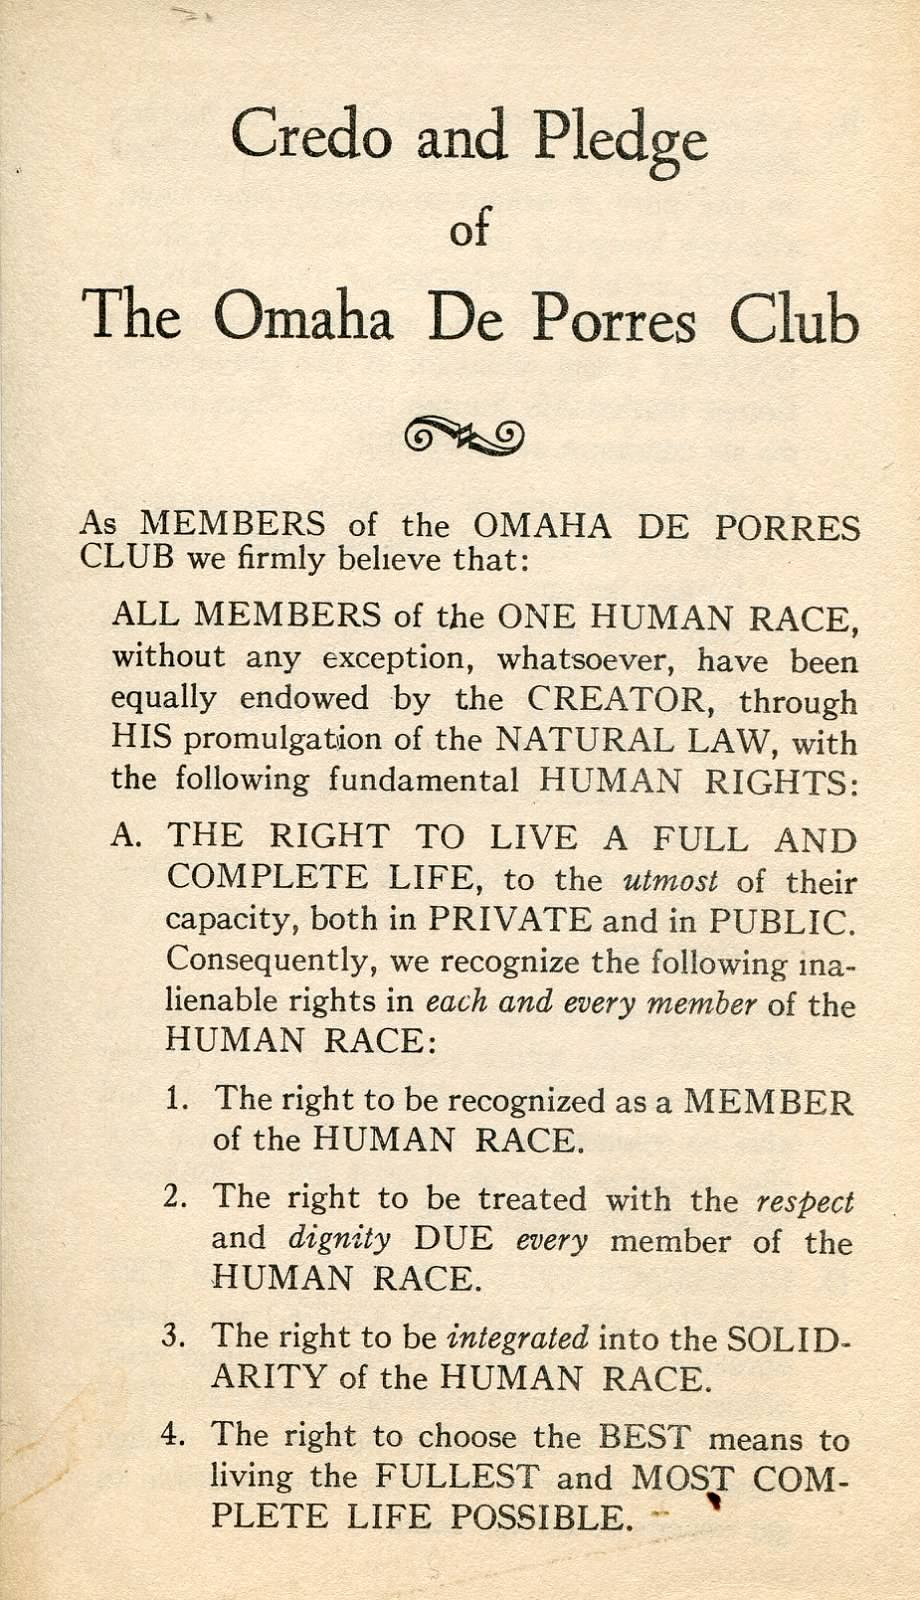 Another photo from The Great Plains Black History Museum collection. This is the pledge all members take before becoming members of the Deporres club.